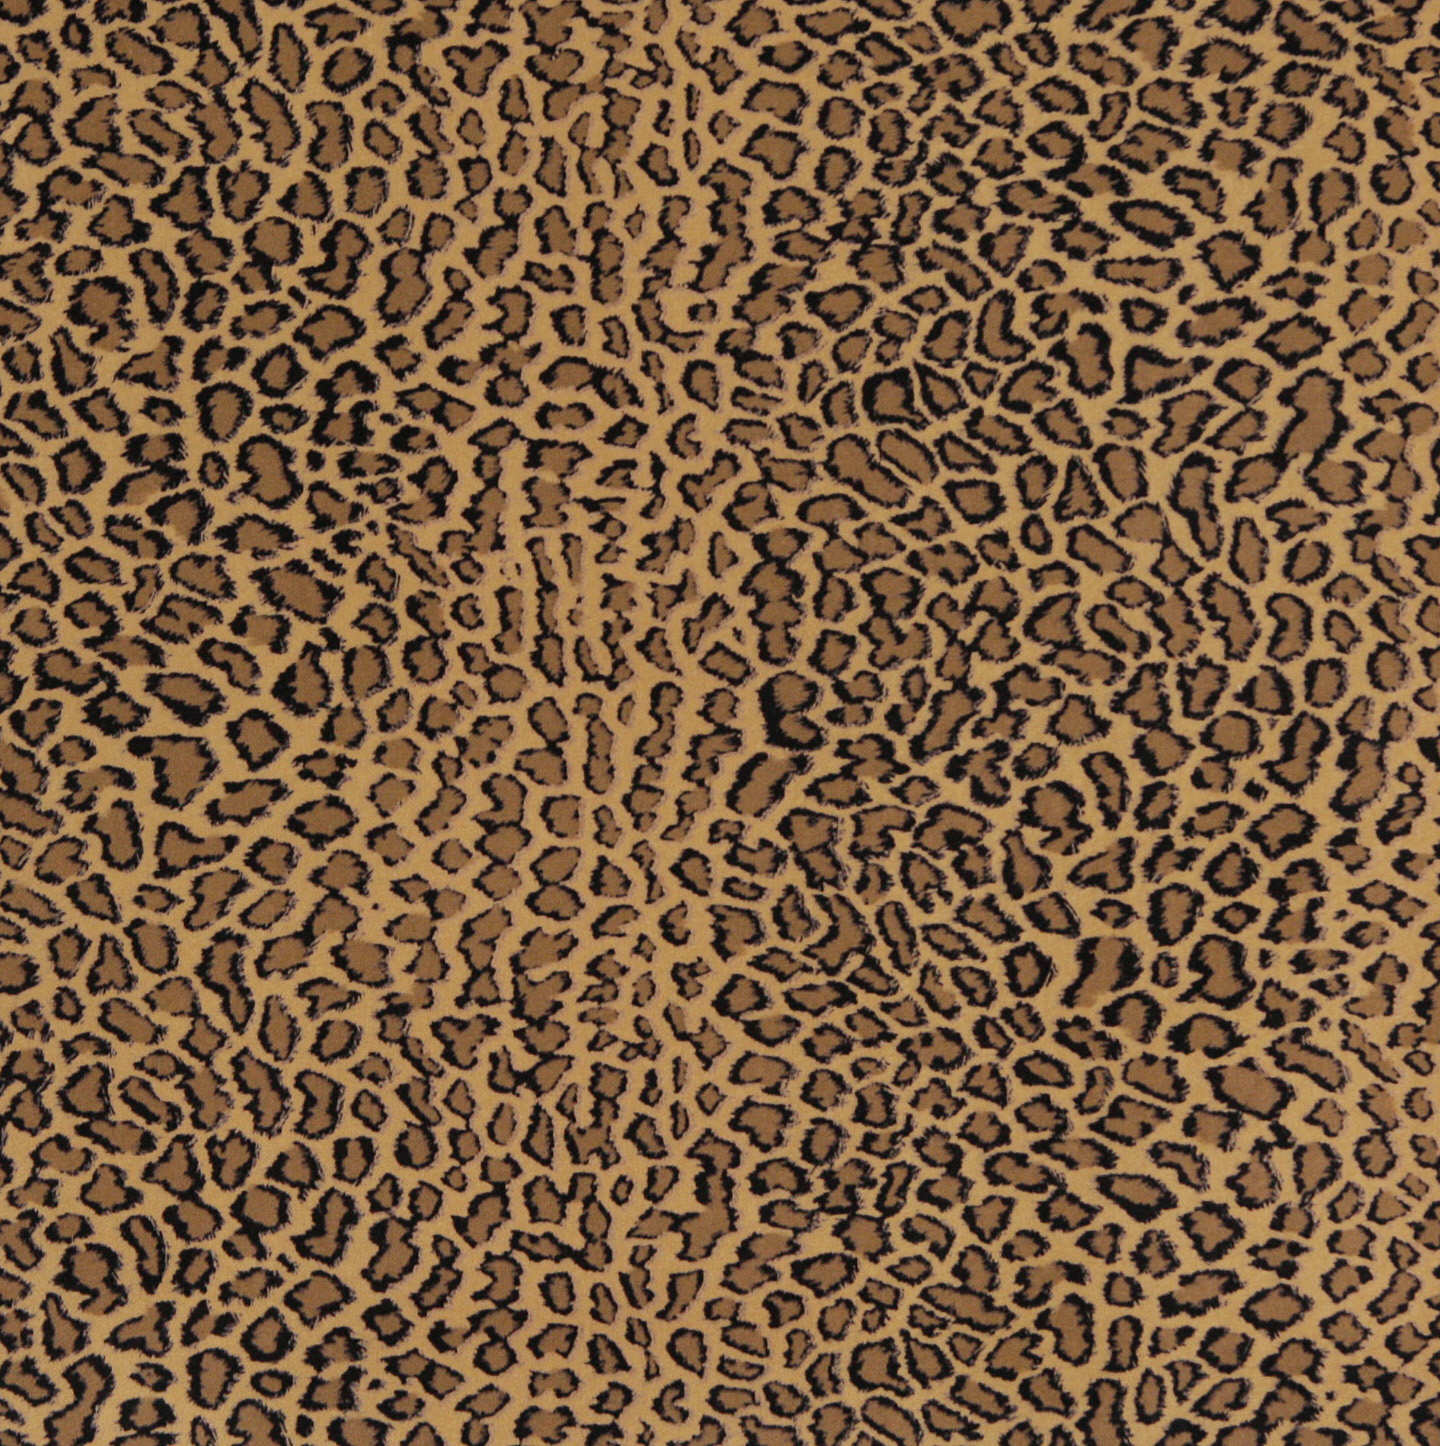 Beige Brown And Black Jaguar Faux Animal Print Microfiber